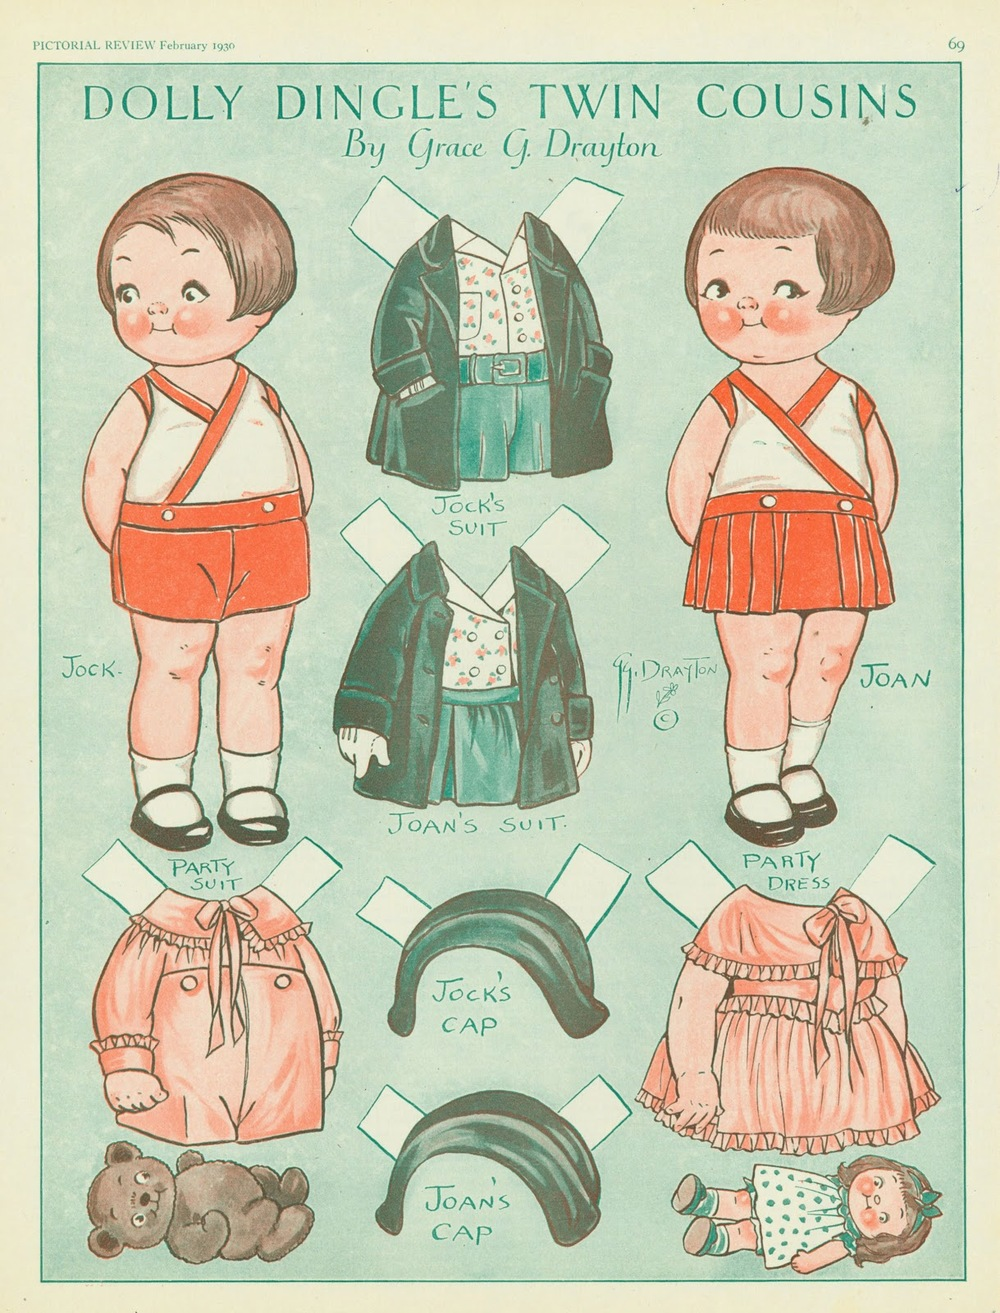 Grace Drayton, Dolly Dingle Paper Dolls with Outfits. 1930.